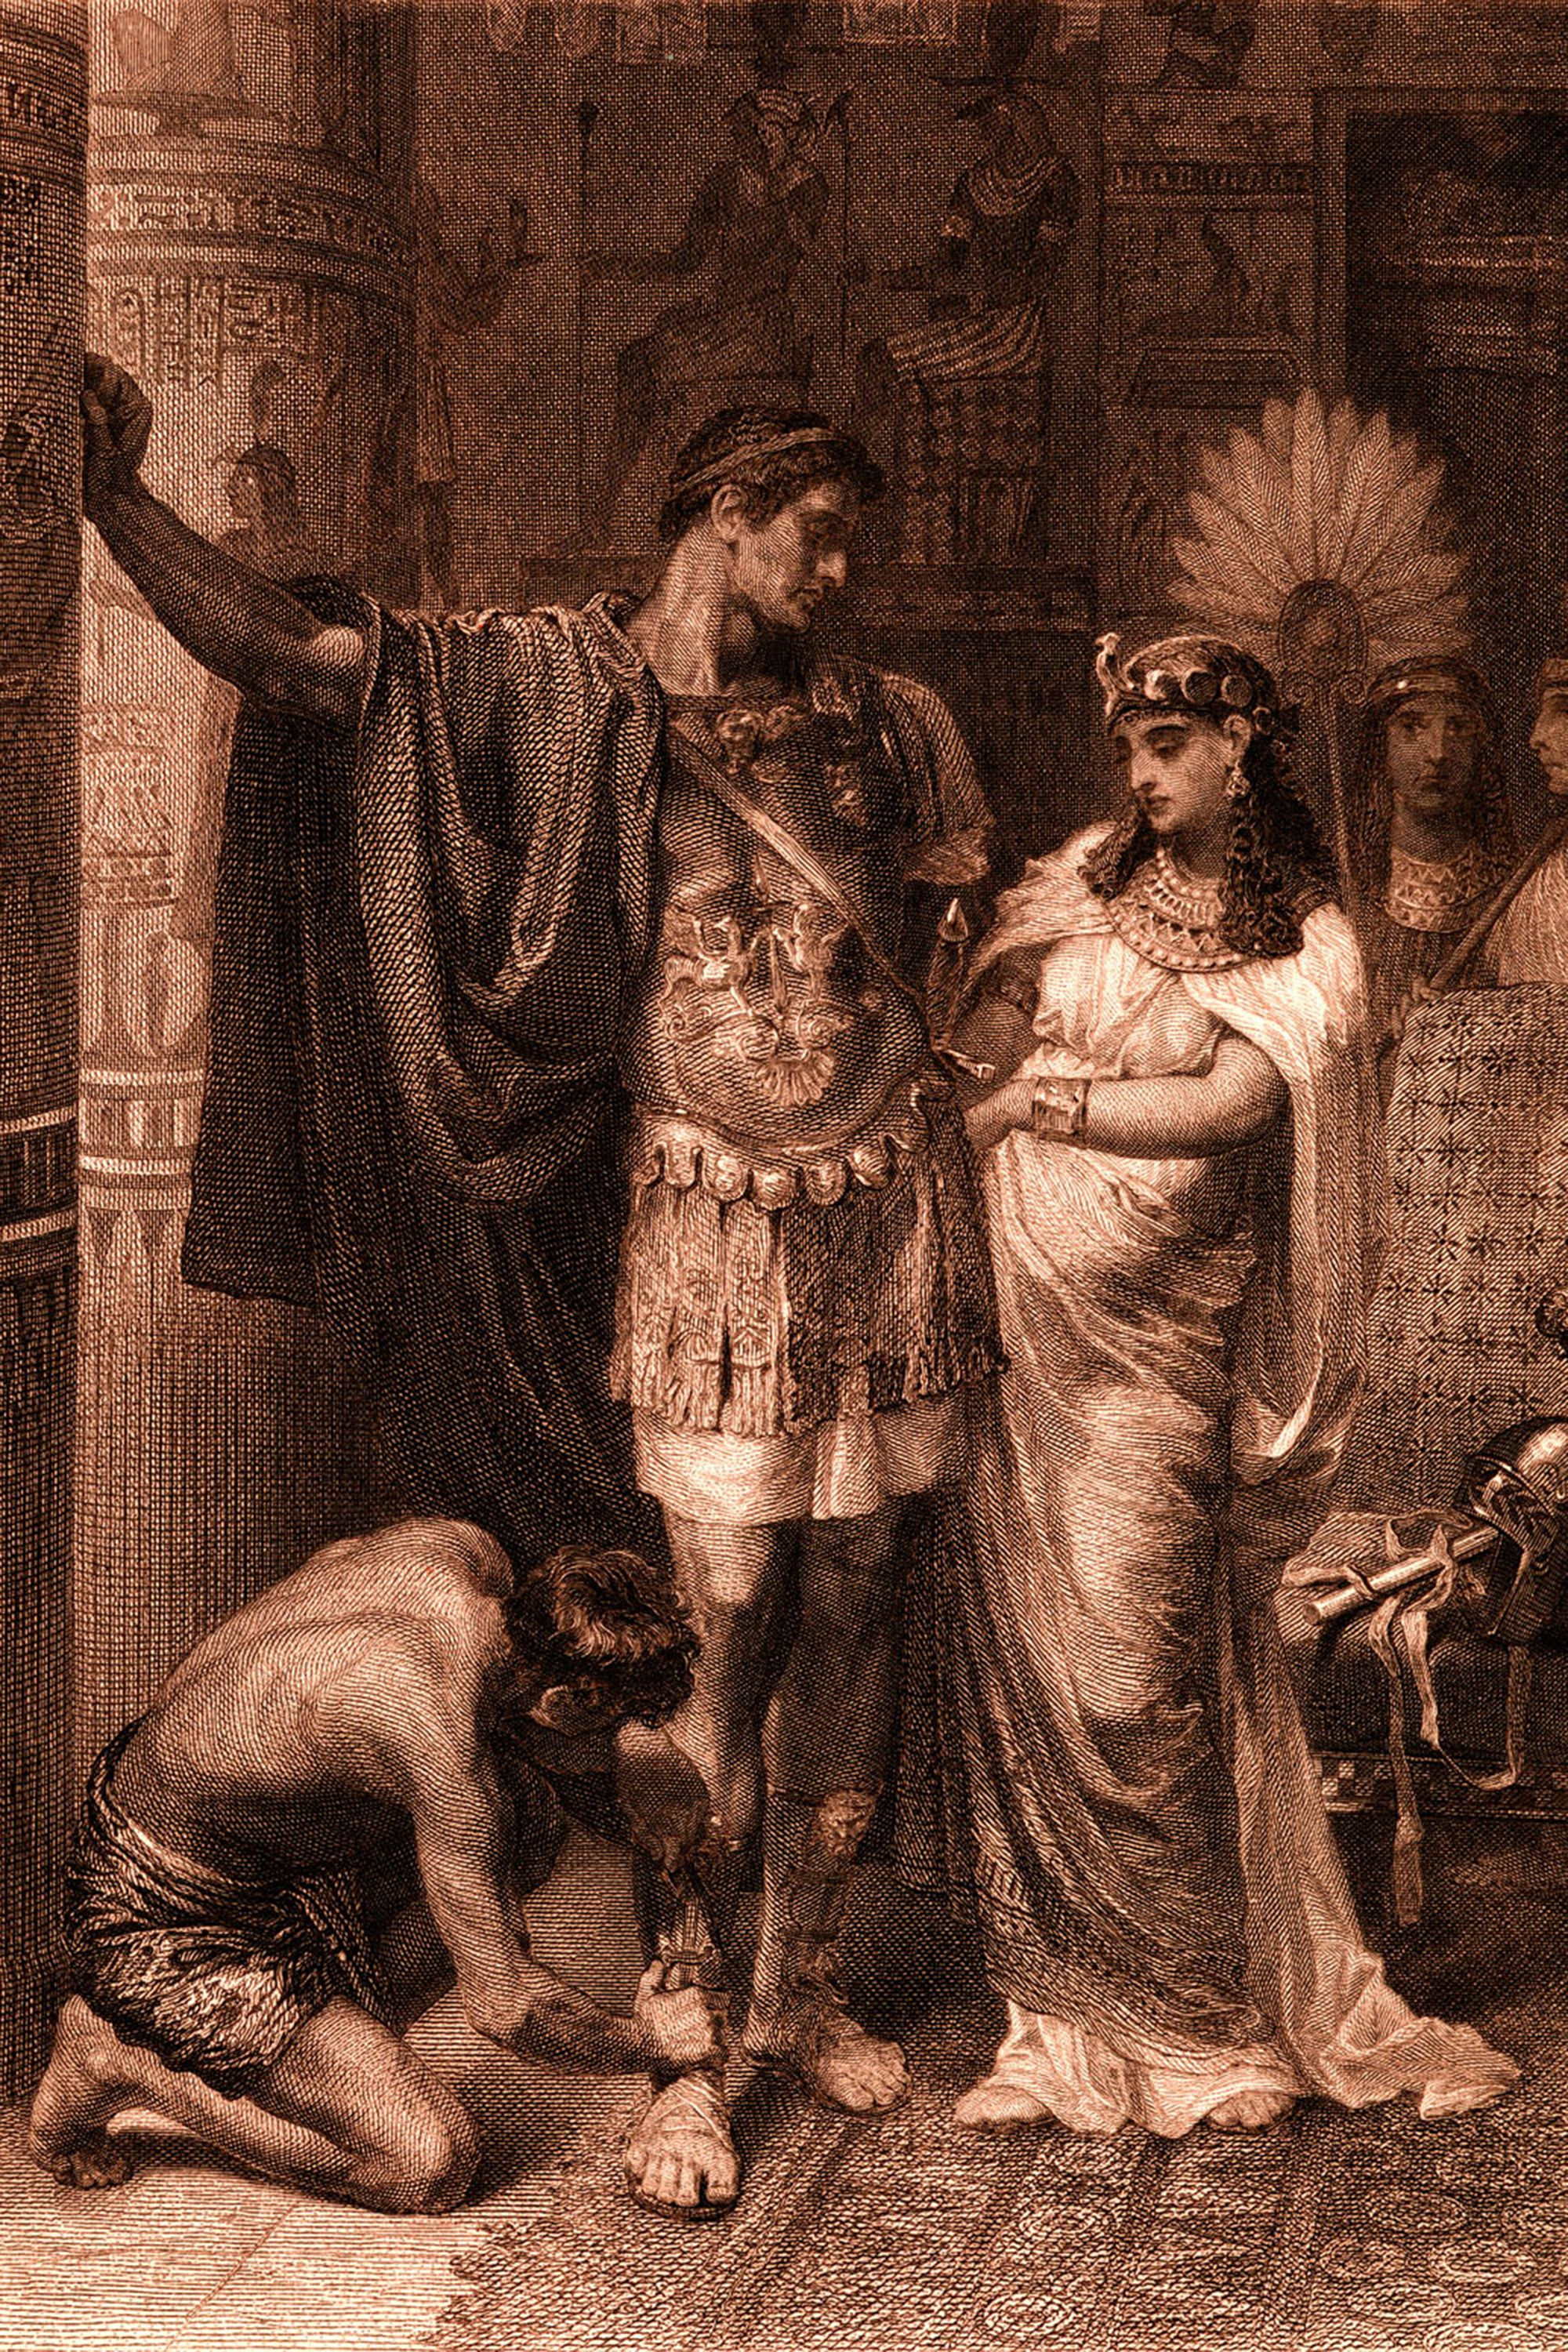 William Shakespeare 's play 'Antony and Cleopatra' (Act III, Scene 11). 'Antony: 'Fall not a tear,  I say; one of them rates. All that is won and lost: give me a kiss;   Even this repays me.'  Painted by Frank Dicksee, engraved by G. Goldberg. WS:l. English poet and playwright baptised 26 April 1564 – 23 April 1616.  (Photo by Culture Club/Getty Images)